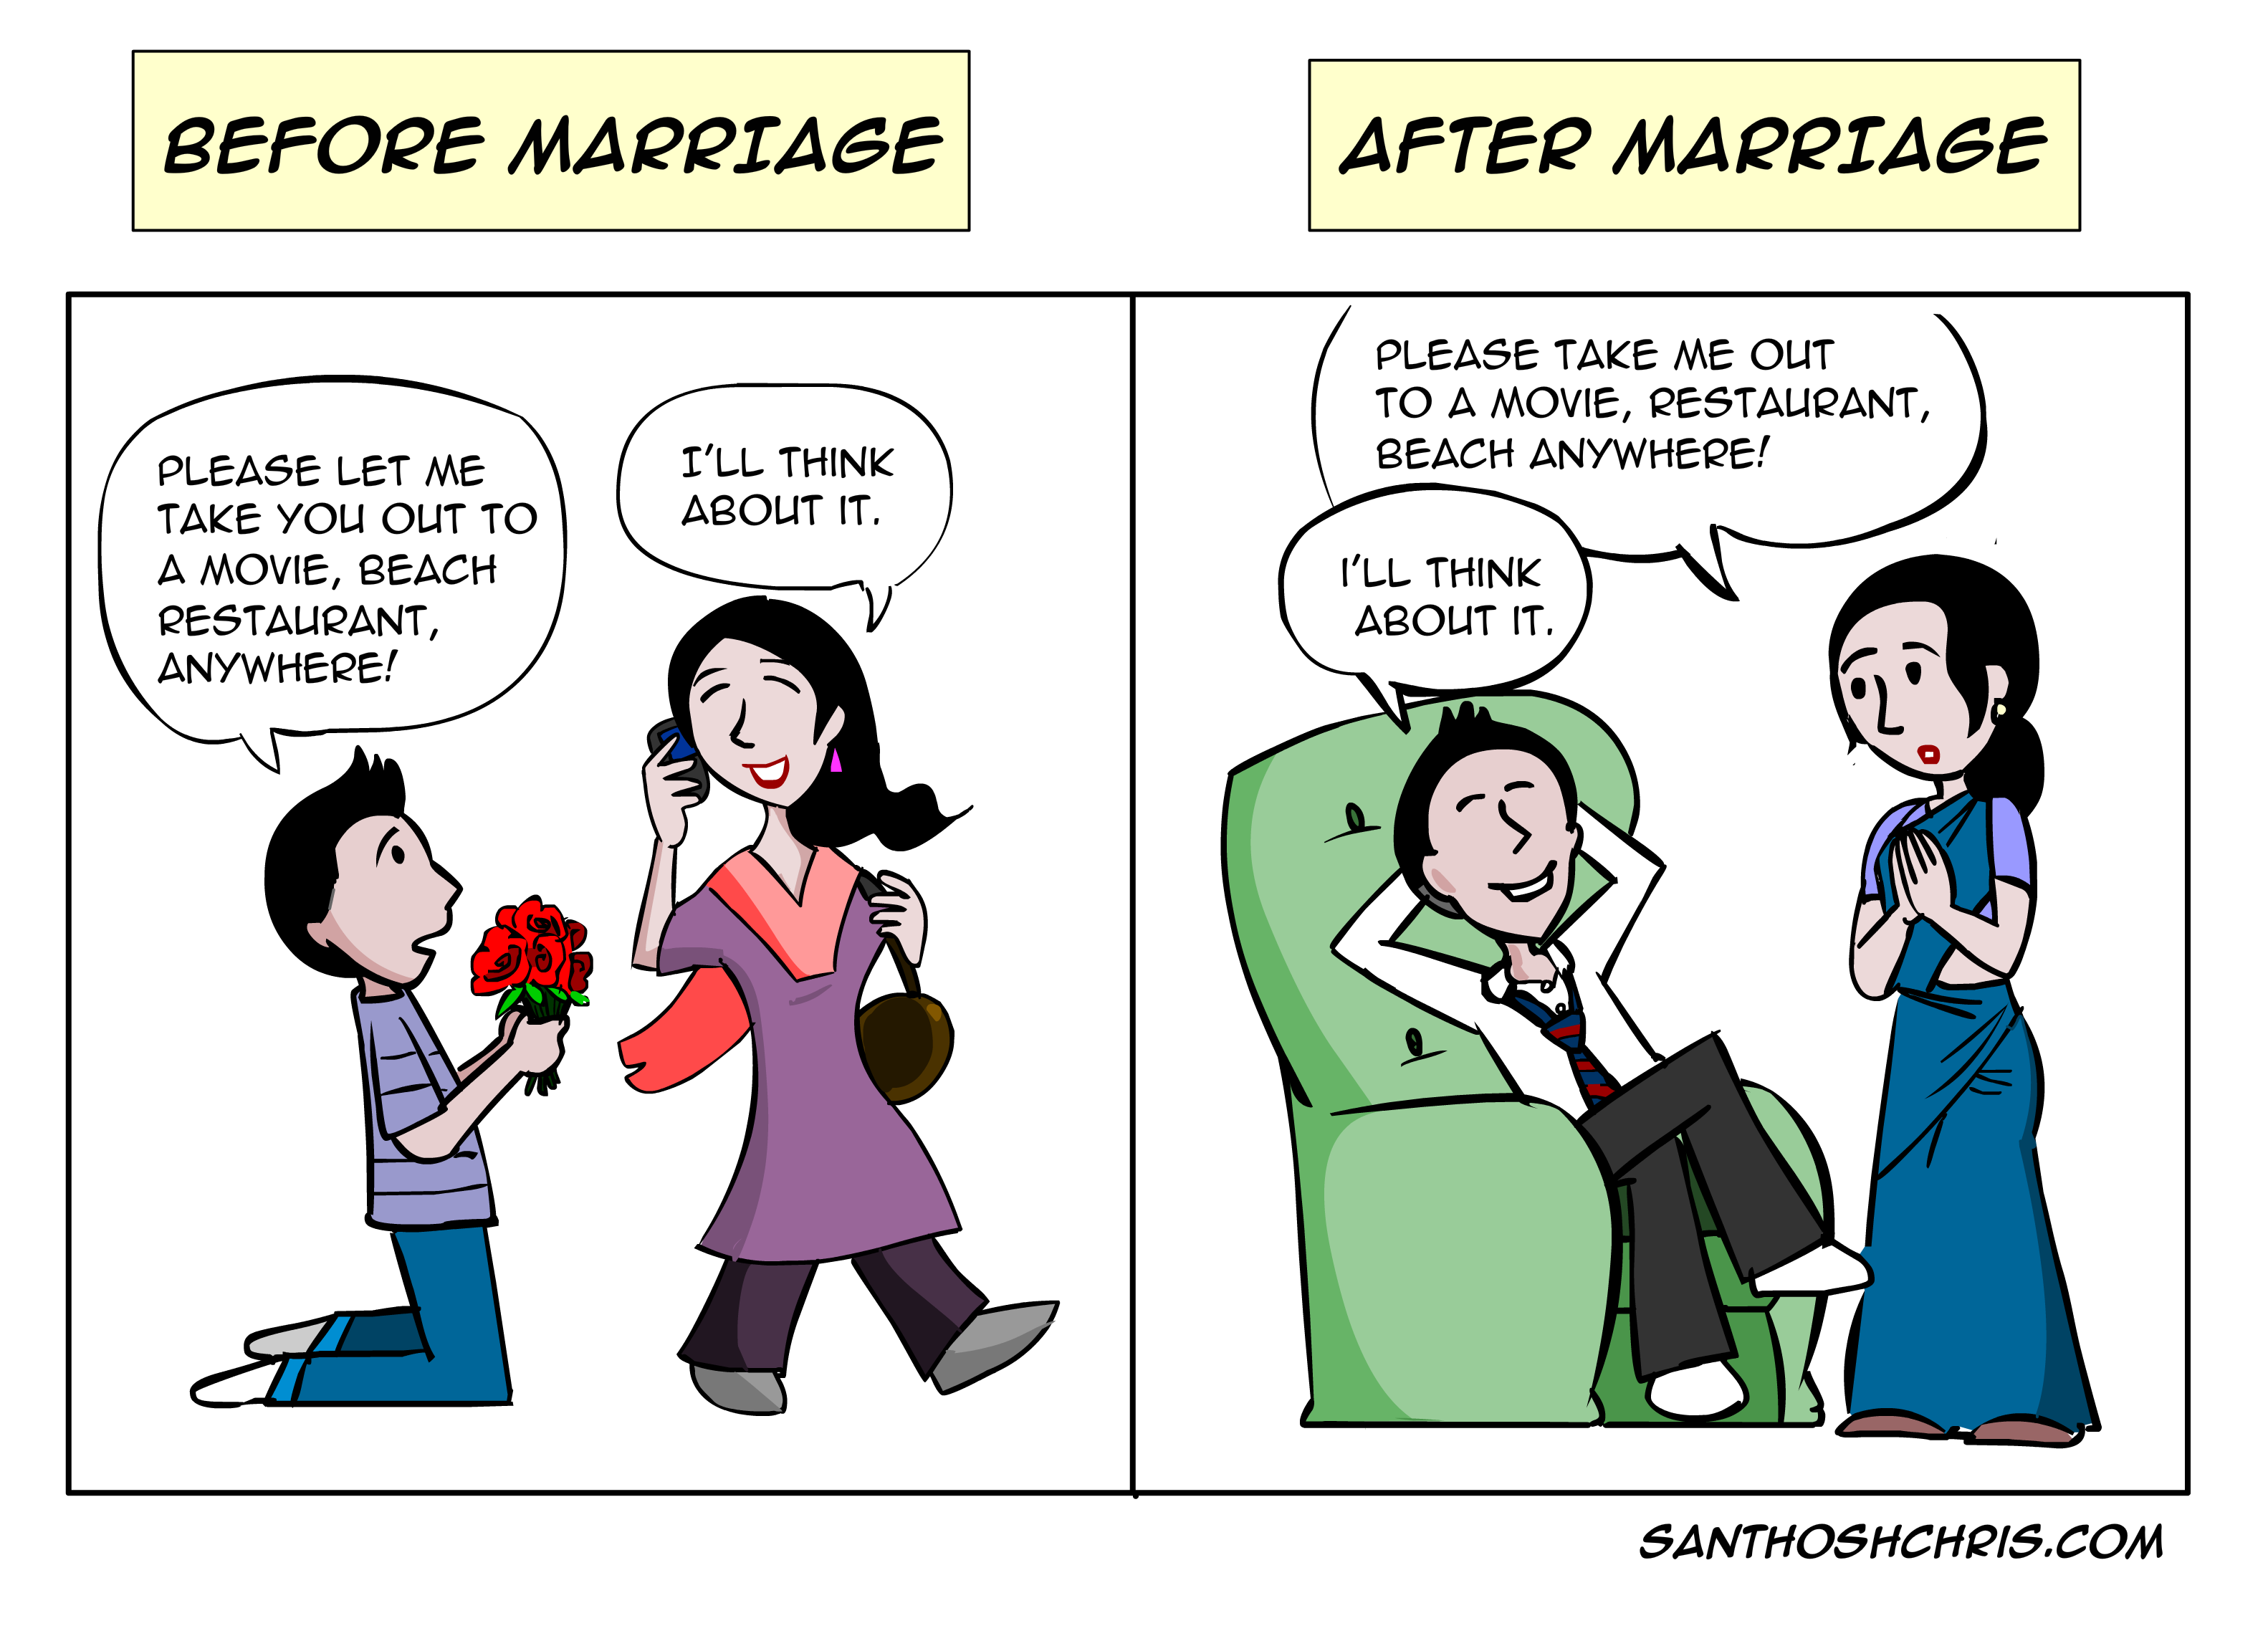 Marriage Before and After